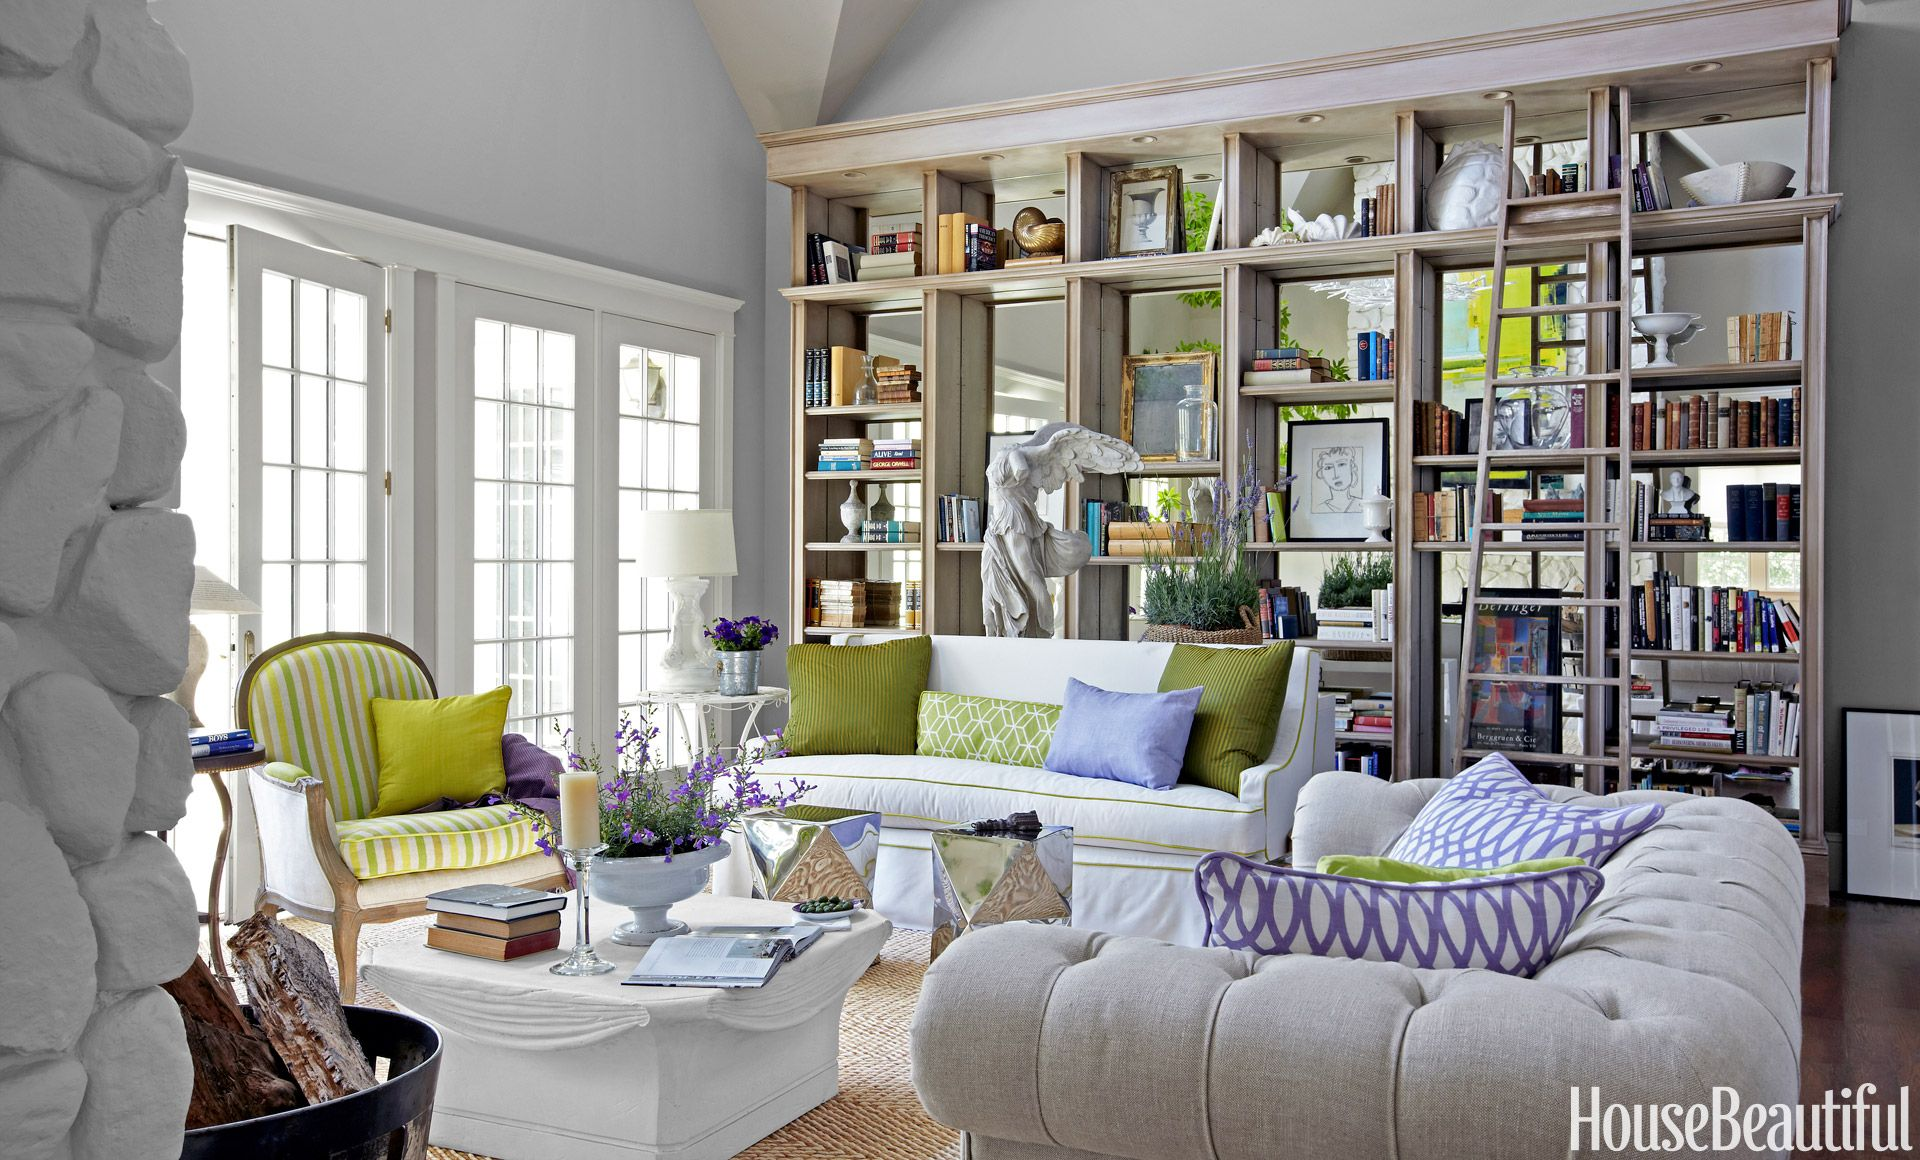 Living Room Bookshelf Decorating Ideas Beauteous Bookshelf Decorating Ideas  Unique Bookshelf Decor Ideas Design Inspiration